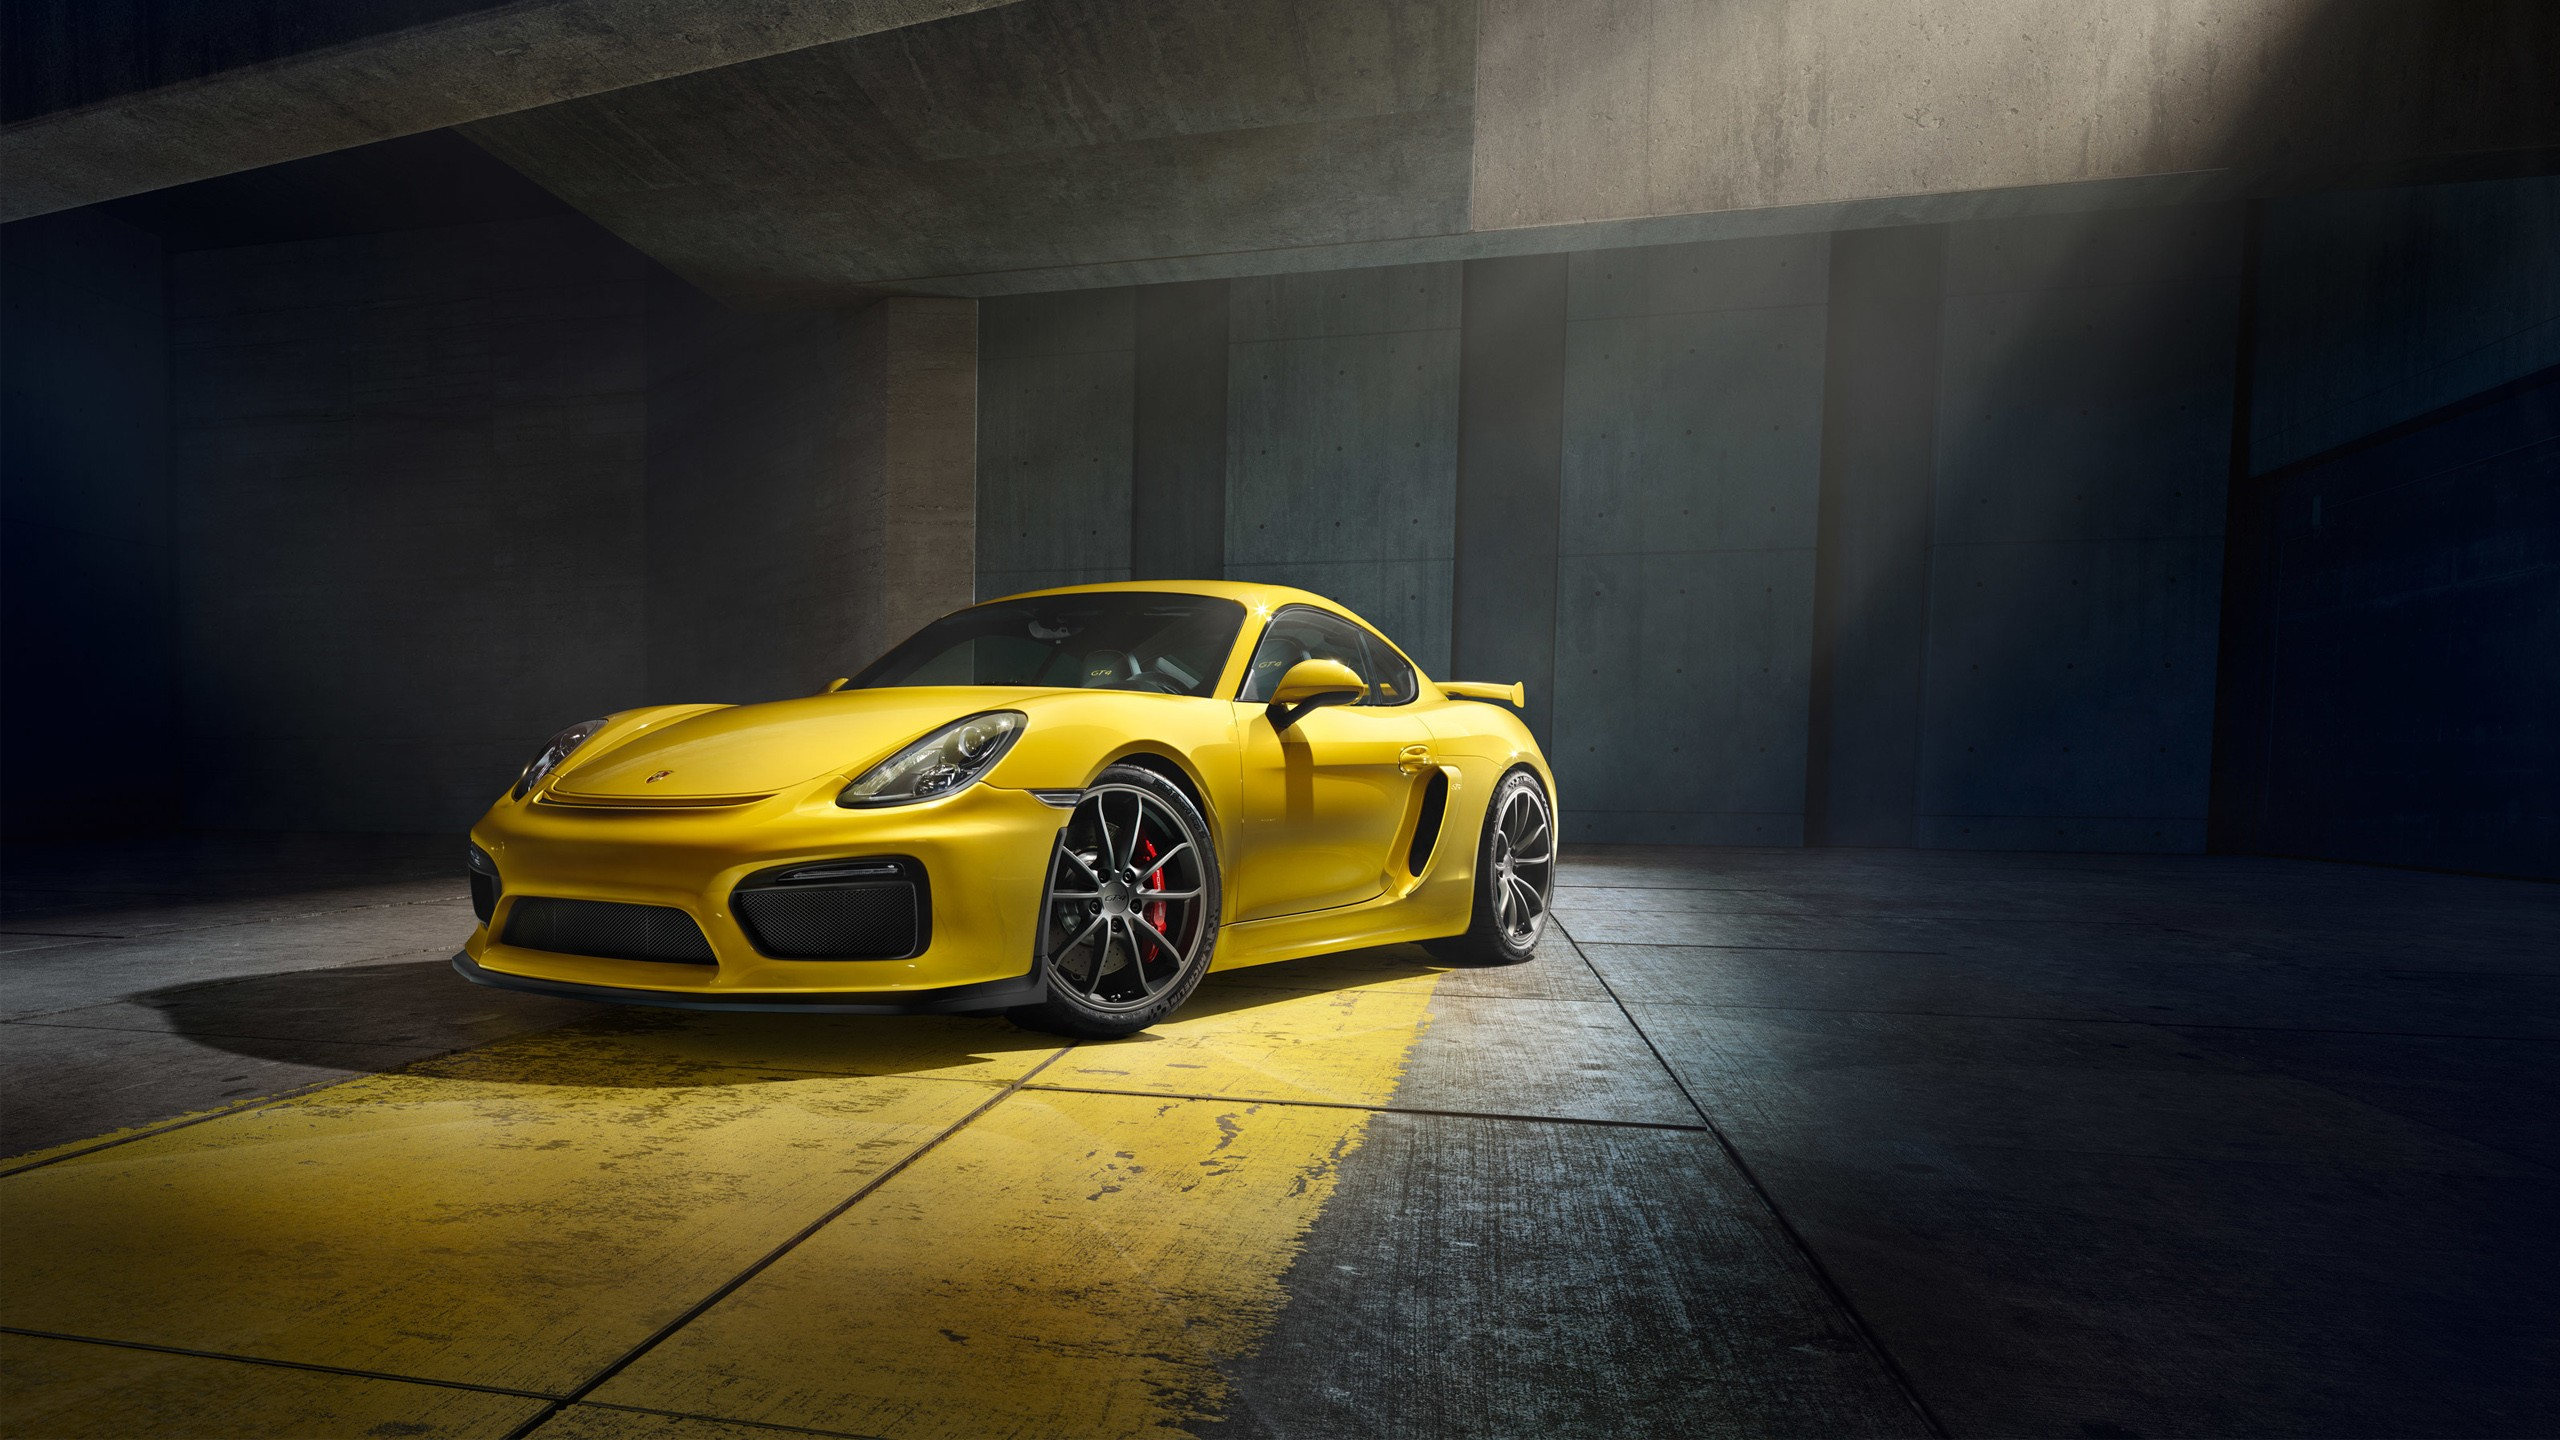 Cute Love Hd Wallpapers For Android Porsche Cayman Gt4 2015 Wallpapers Hd Wallpapers Id 14829